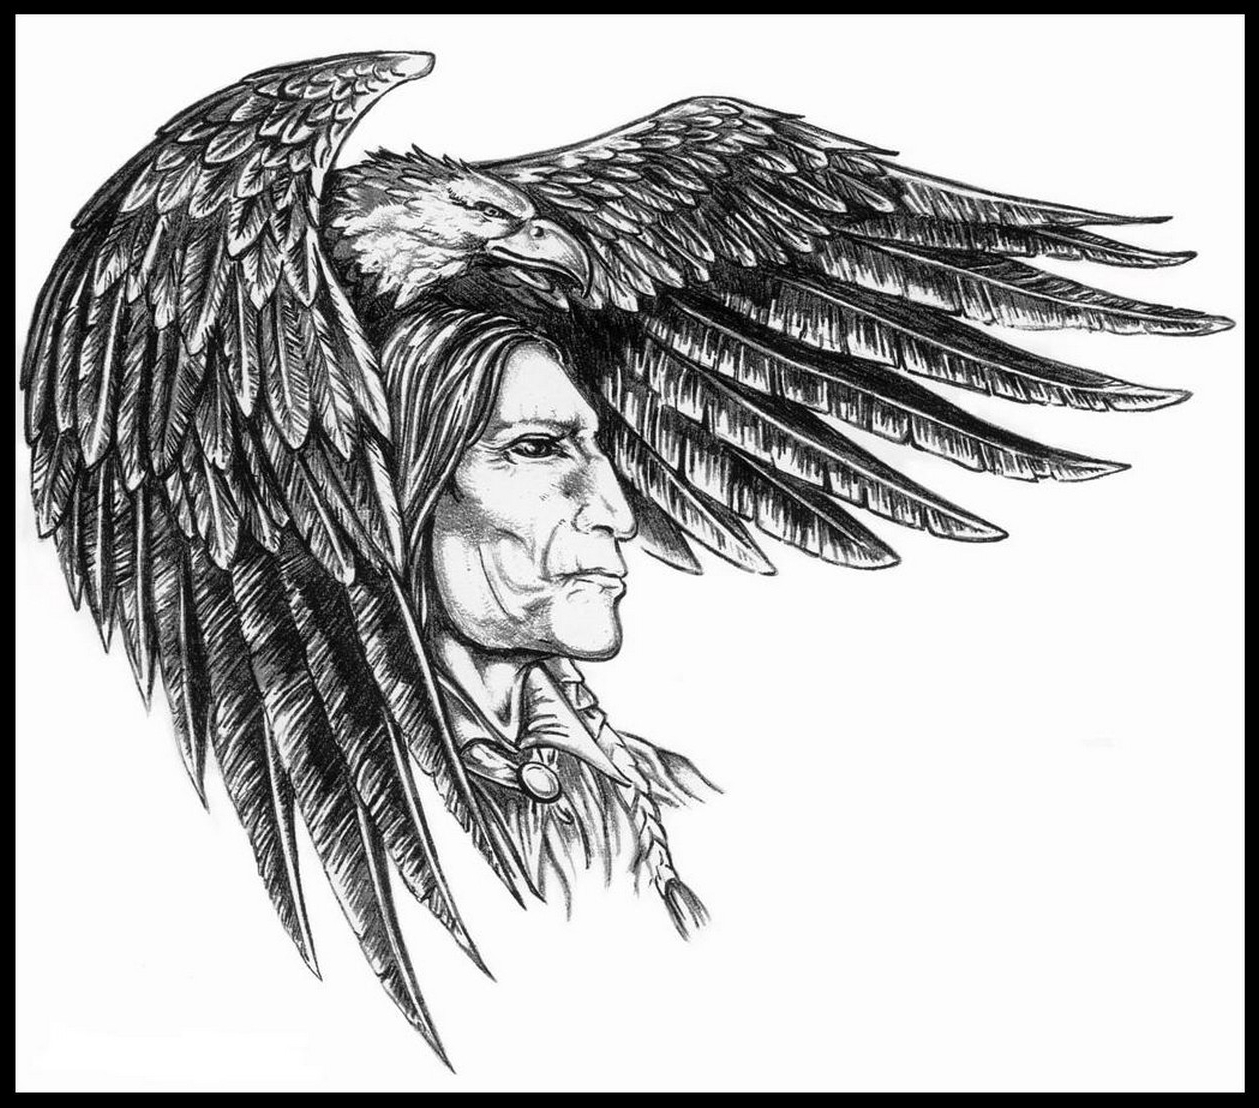 1259x1108 Native American Feathers Tattoos Native American With Feathers